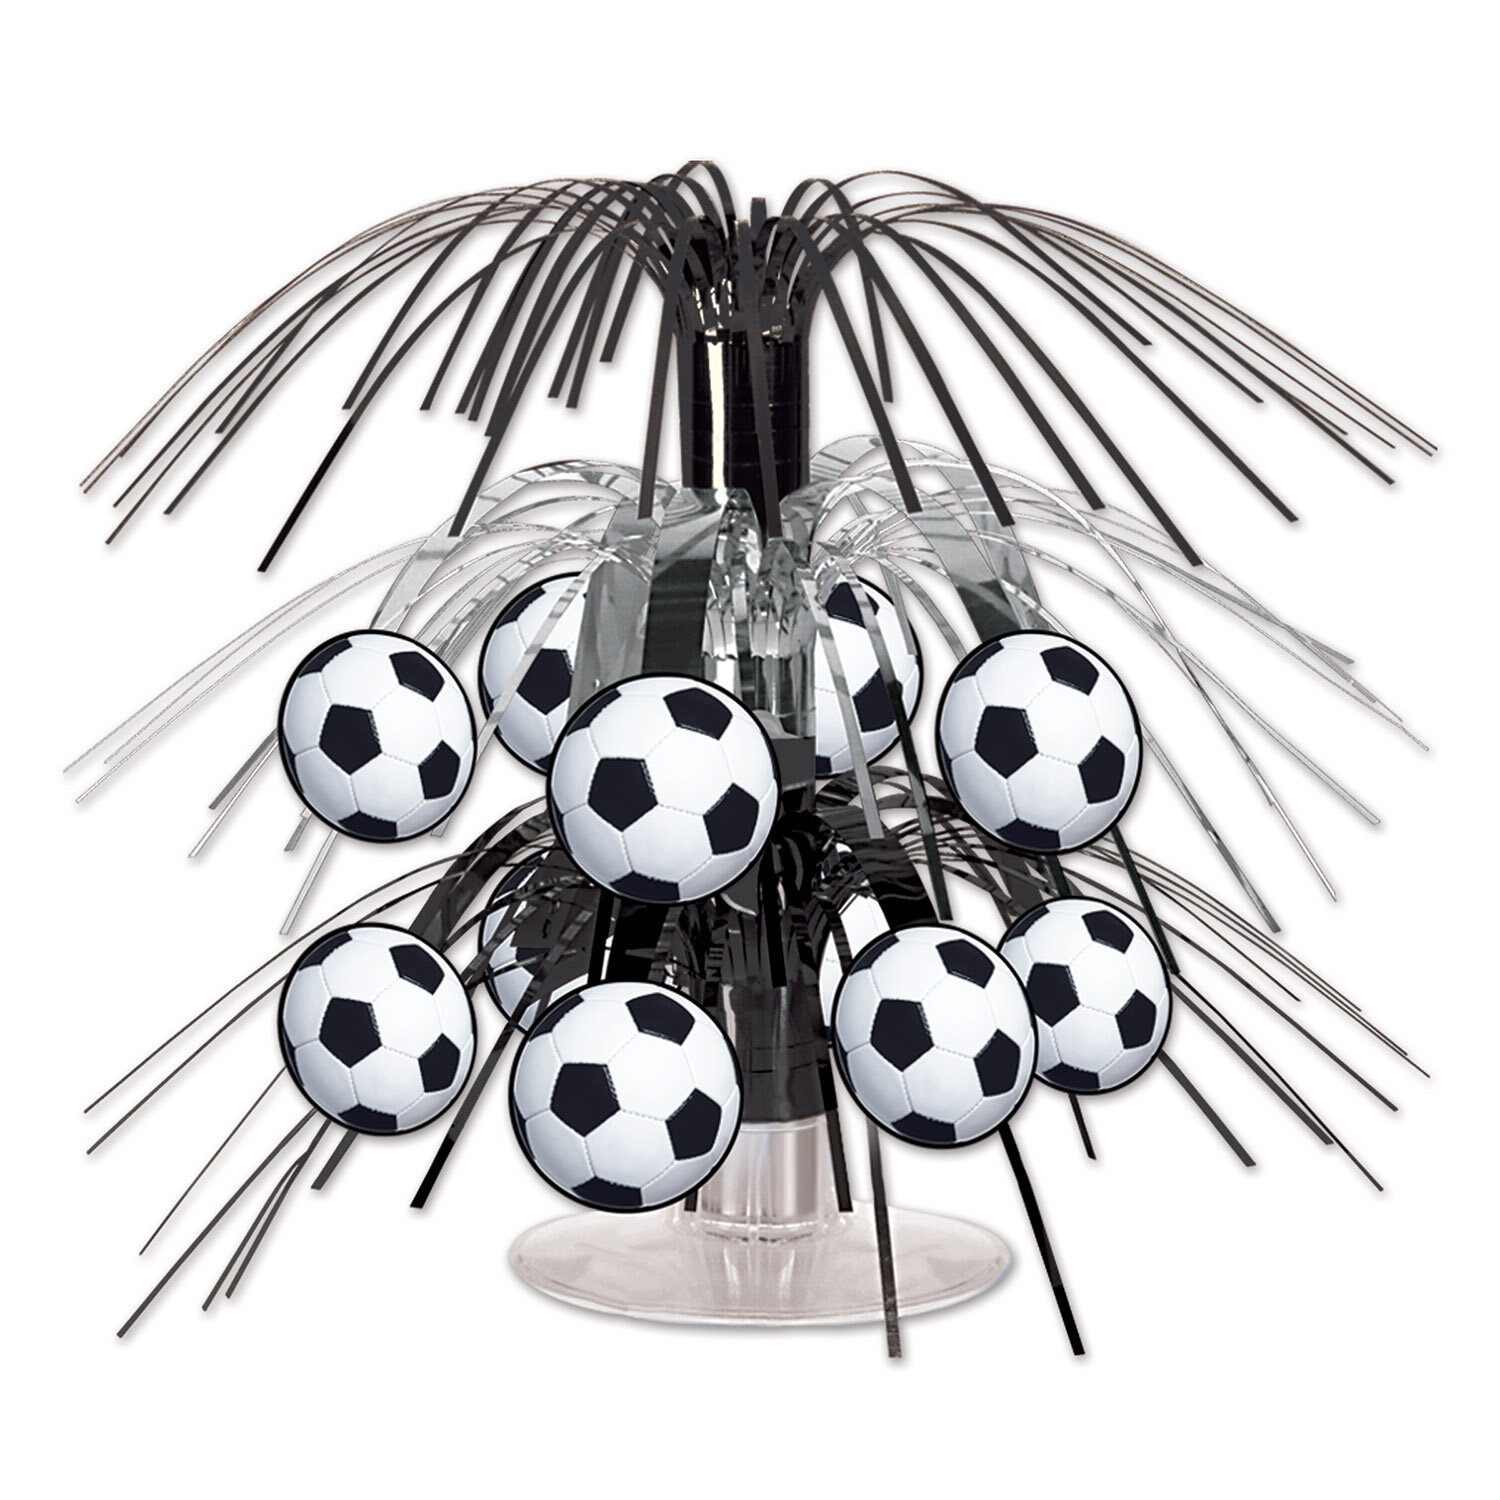 Can be turned into cupcake derorations. 24 Soccer ⚽️ themed table scatters